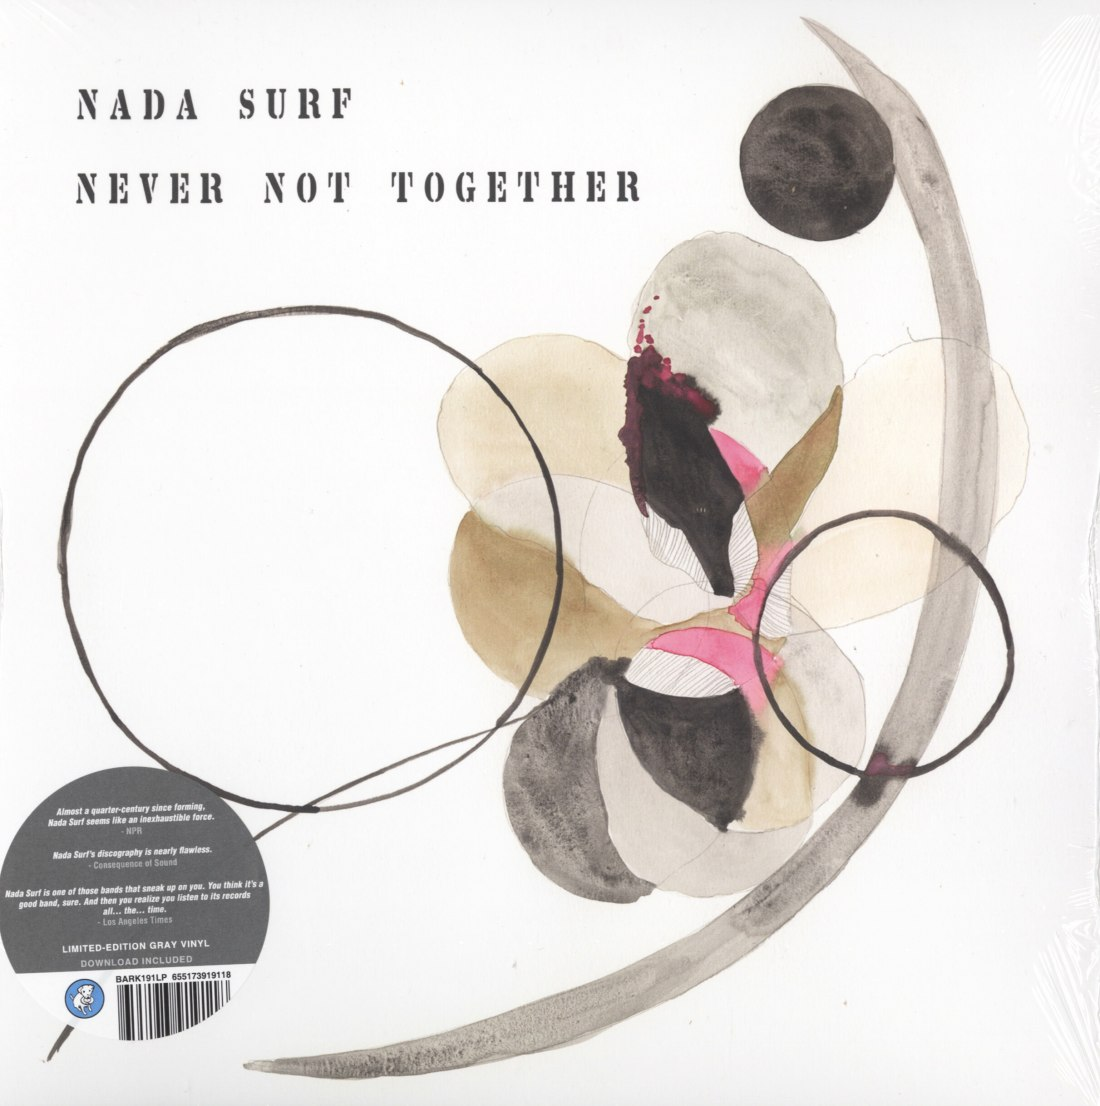 Nada Surf - Never Not Together - Limited Edition, Gray, Colored Vinyl, Barsuk, 2020